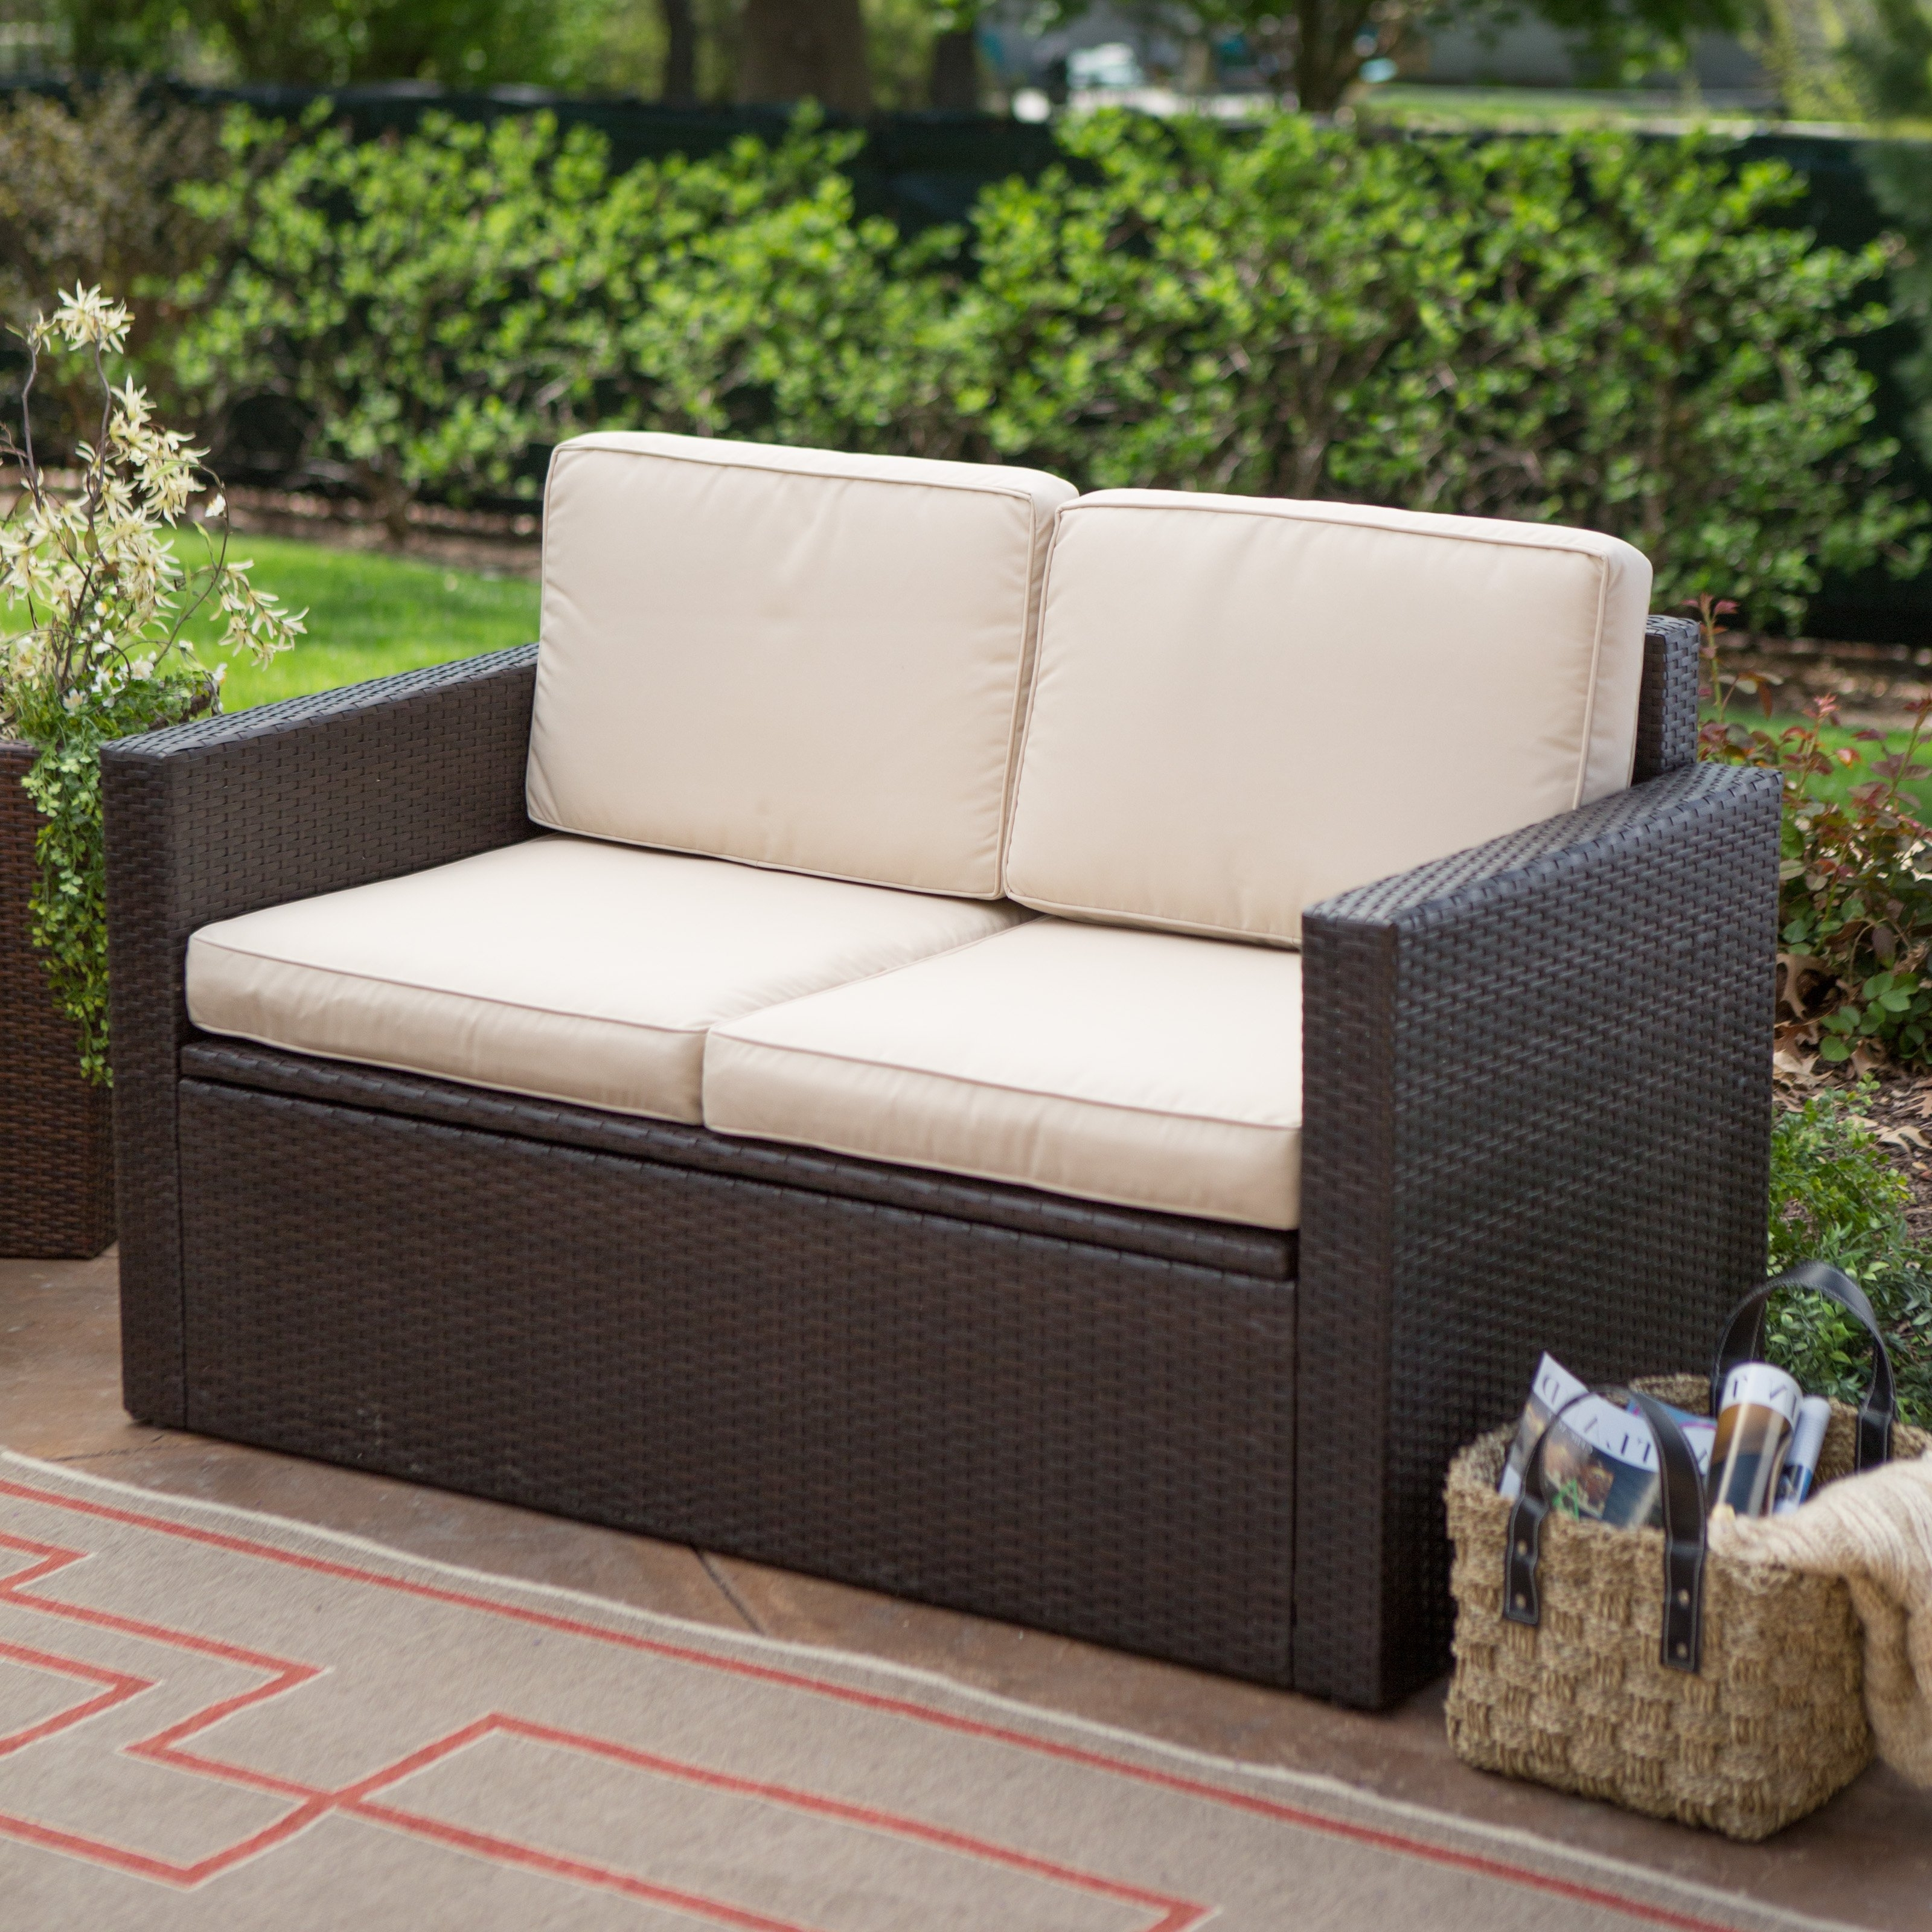 Coral Coast Berea Wicker 4 Piece Conversation Set With Storage Inside Best And Newest Patio Conversation Set With Storage (View 2 of 15)